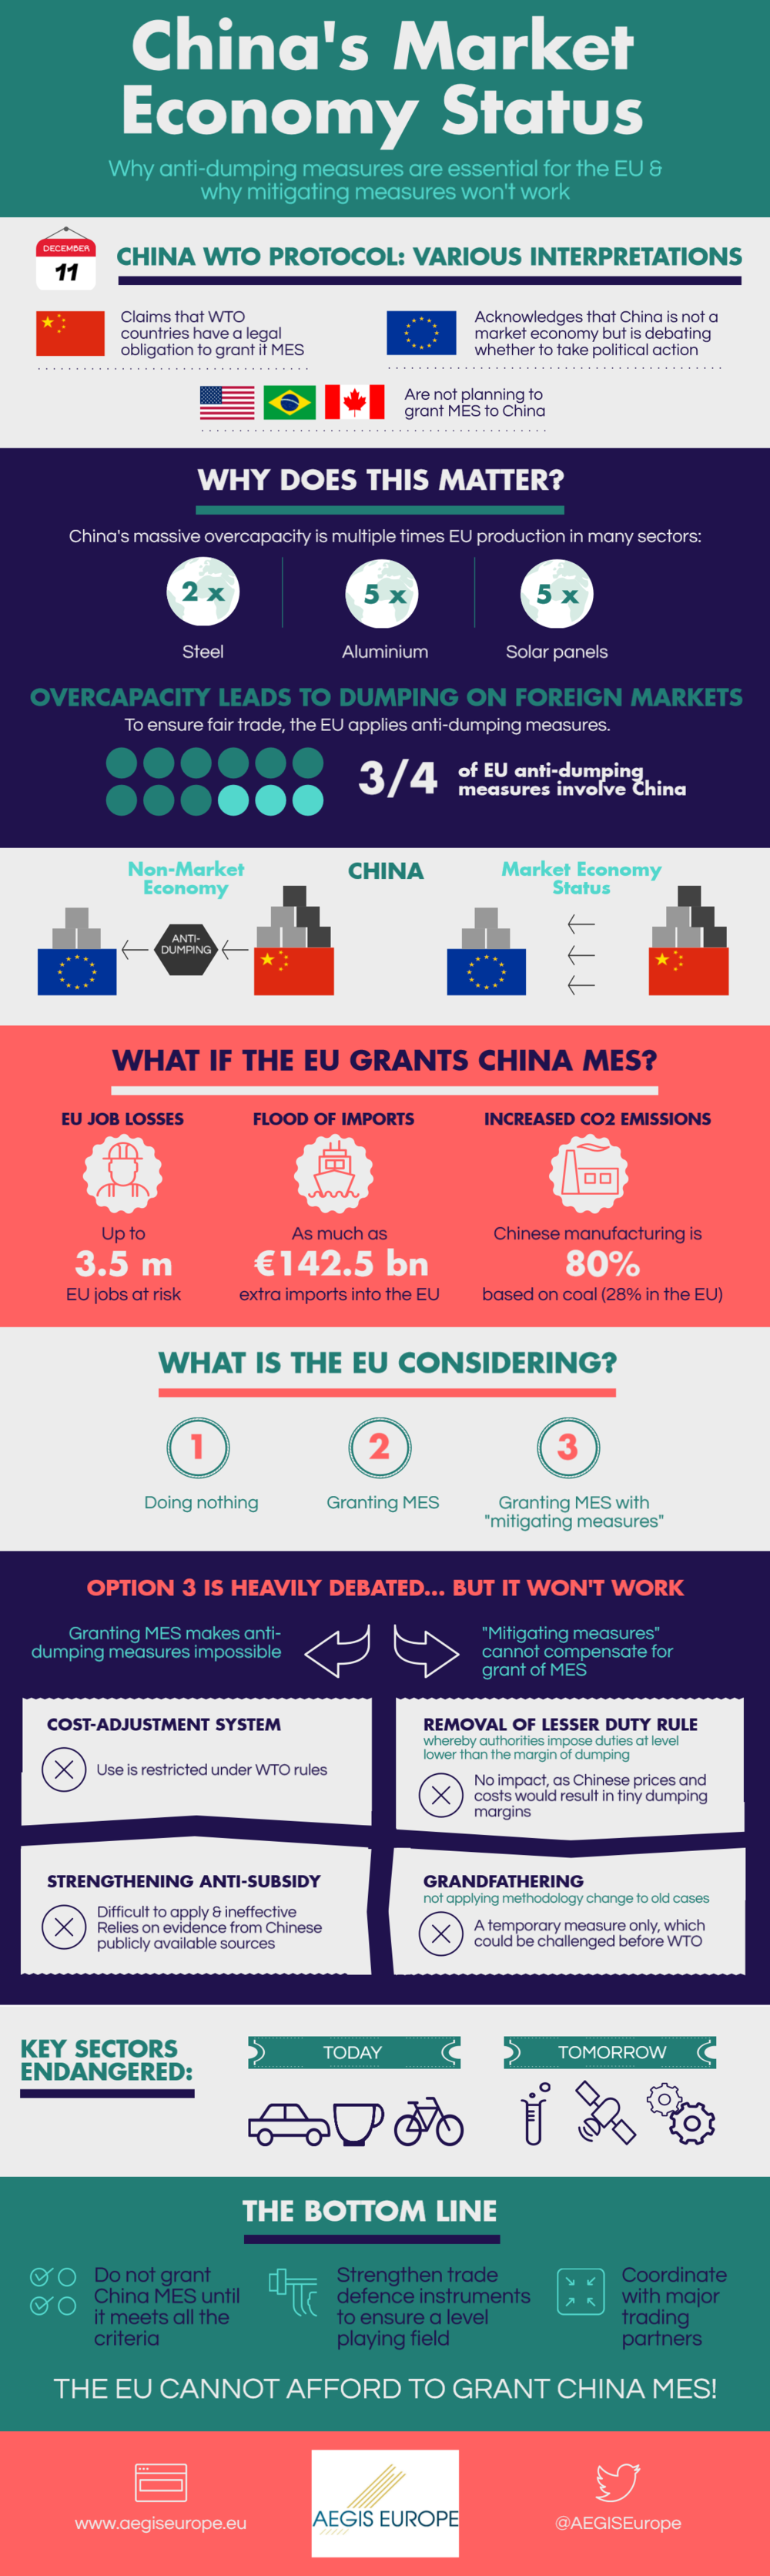 WHY ANTI-DUMPING MEASURES ARE ESSENTIAL FOR THE EU & WHY MITIGATING MEASURES WON'T WOK